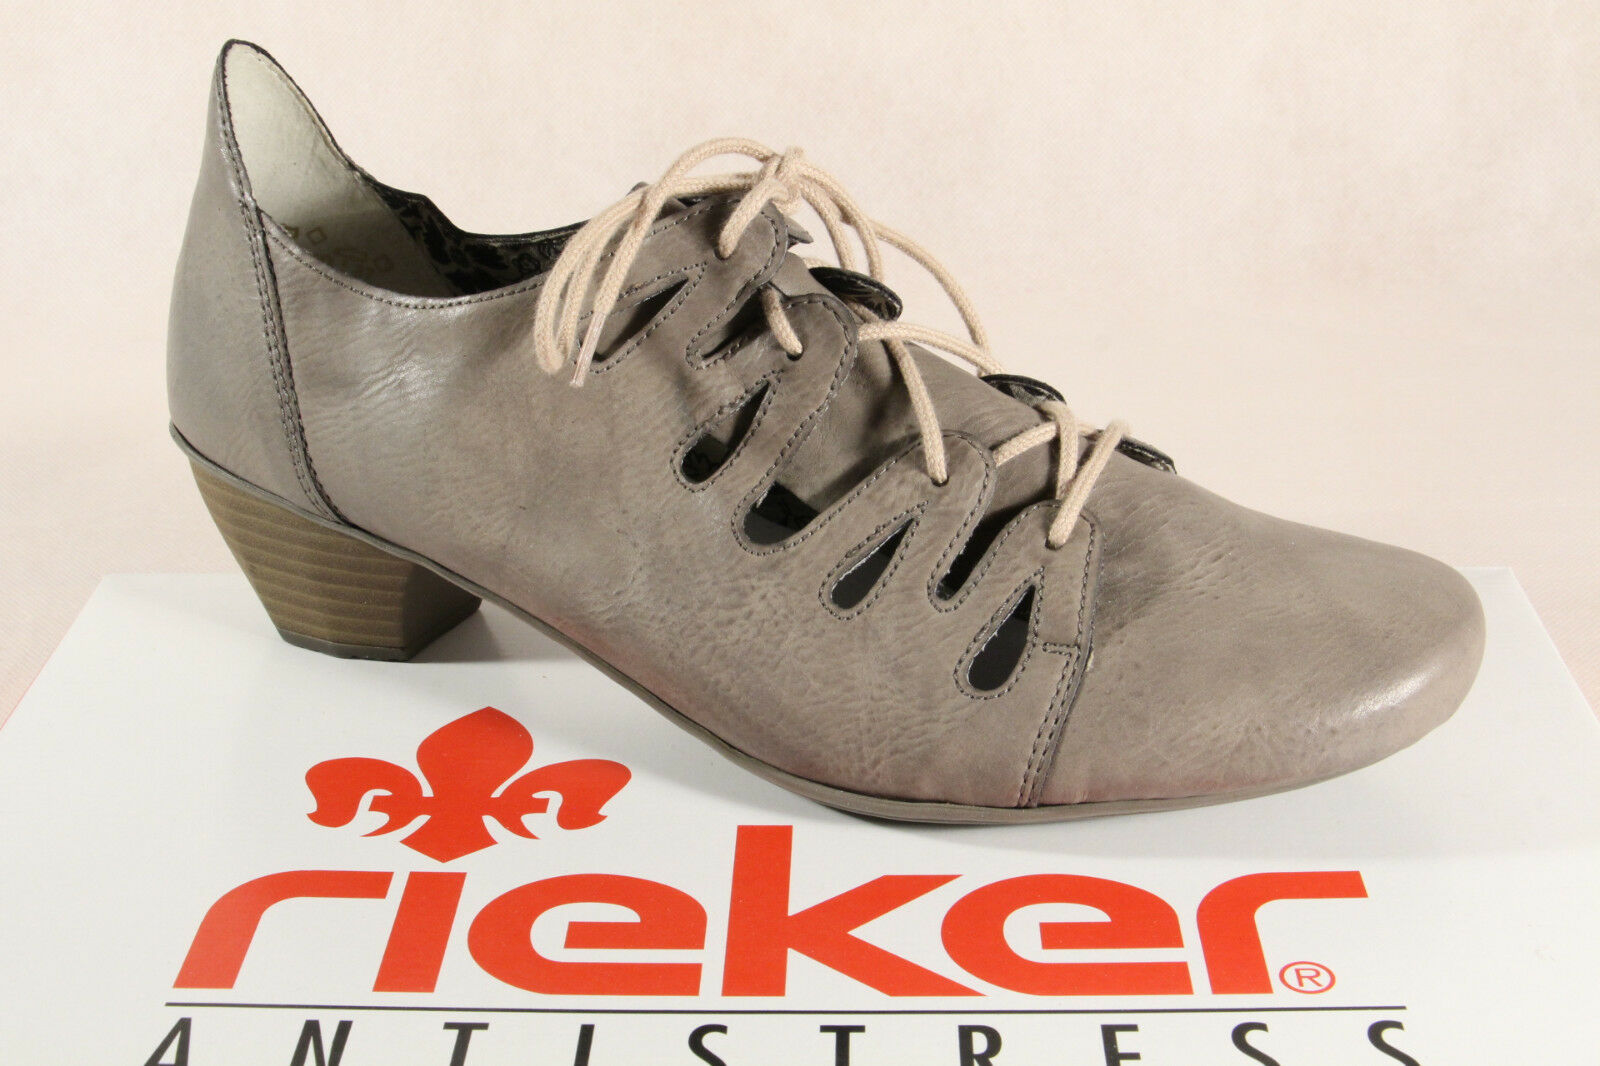 Rieker Ladies Lace-Up shoes, Slippers, Casual shoes, Court shoes Grey New